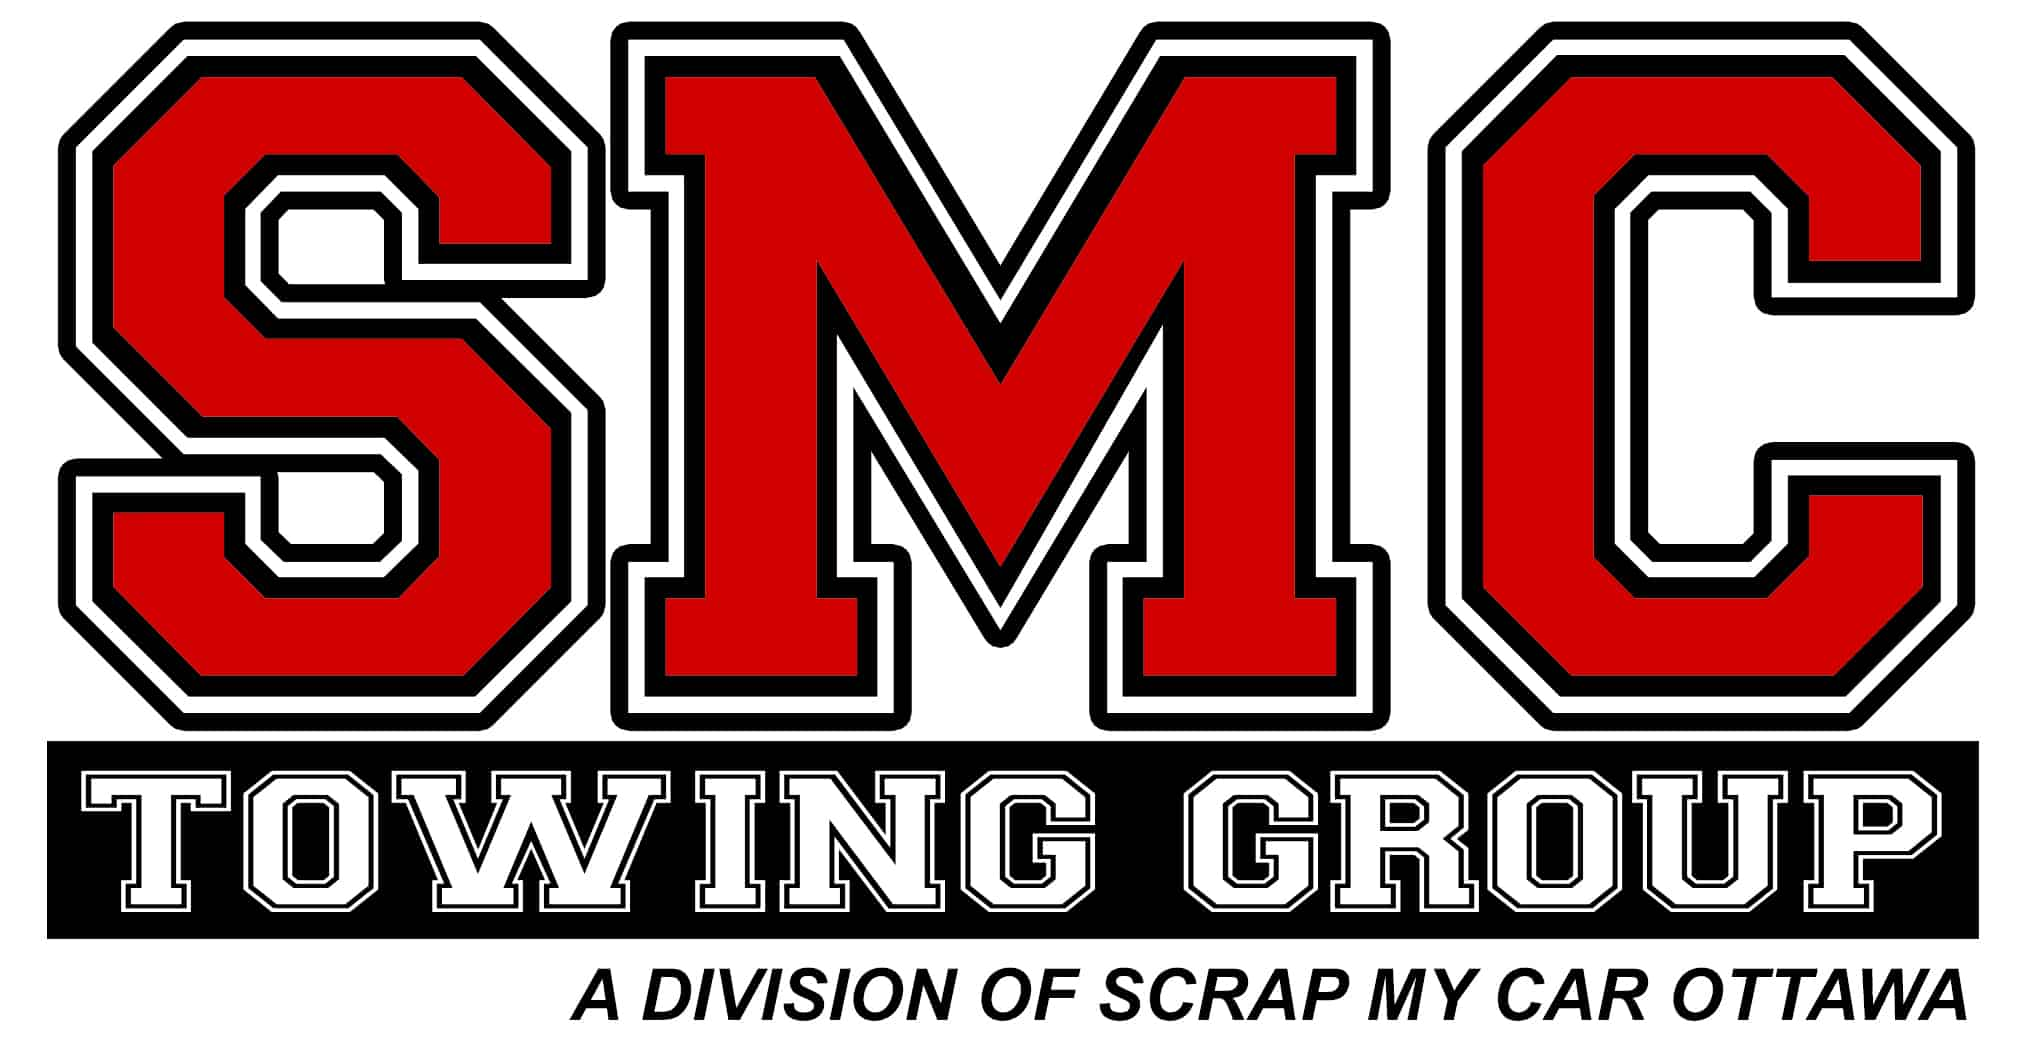 SMC Ottawa Towing Group Now Offers Full-Service Towing Throughout Ottawa